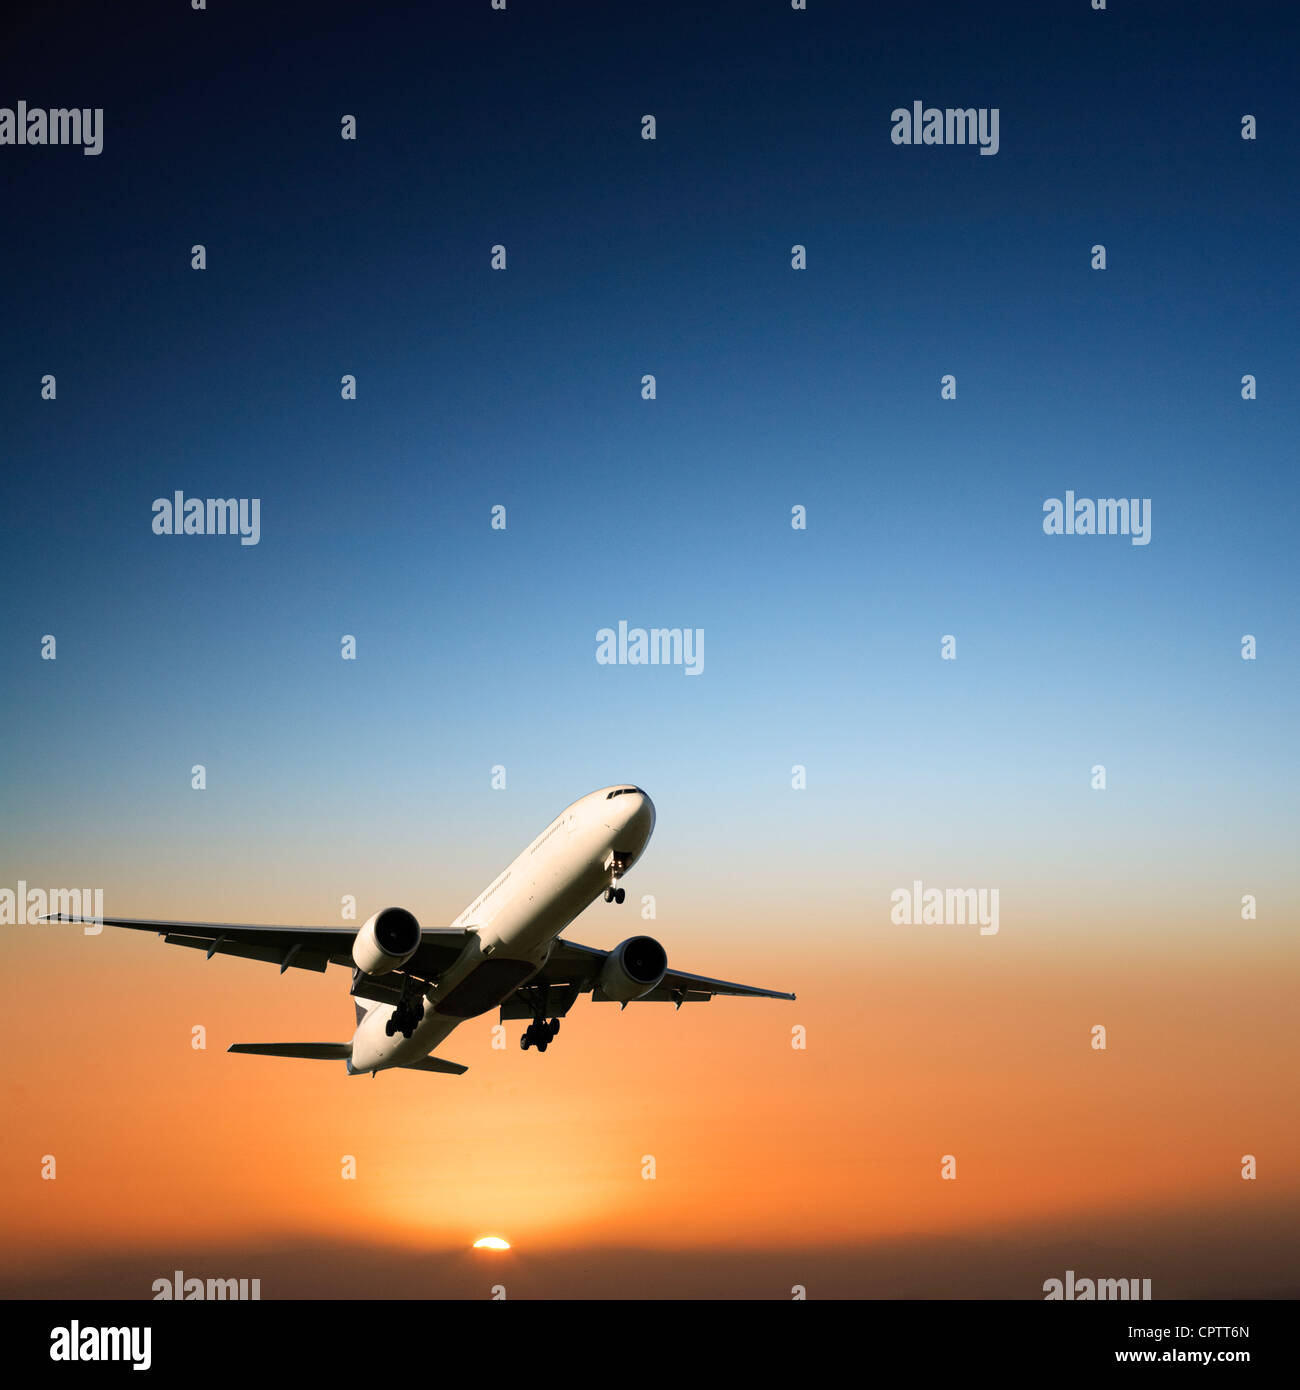 Boeing 777 coming in to land at sunset. - Stock Image